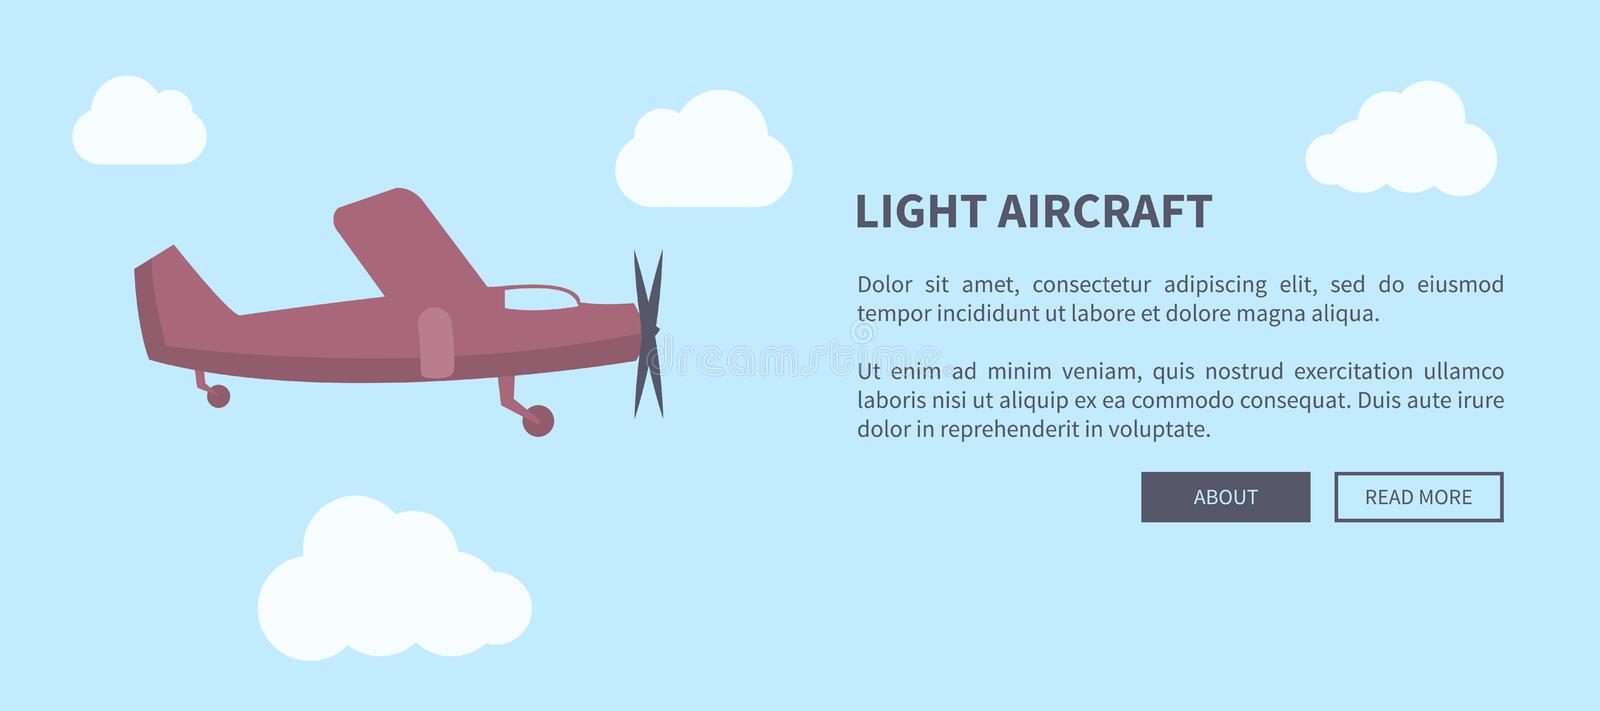 Light Aircraft Closeup of Airplane in Color Banner vector illustration